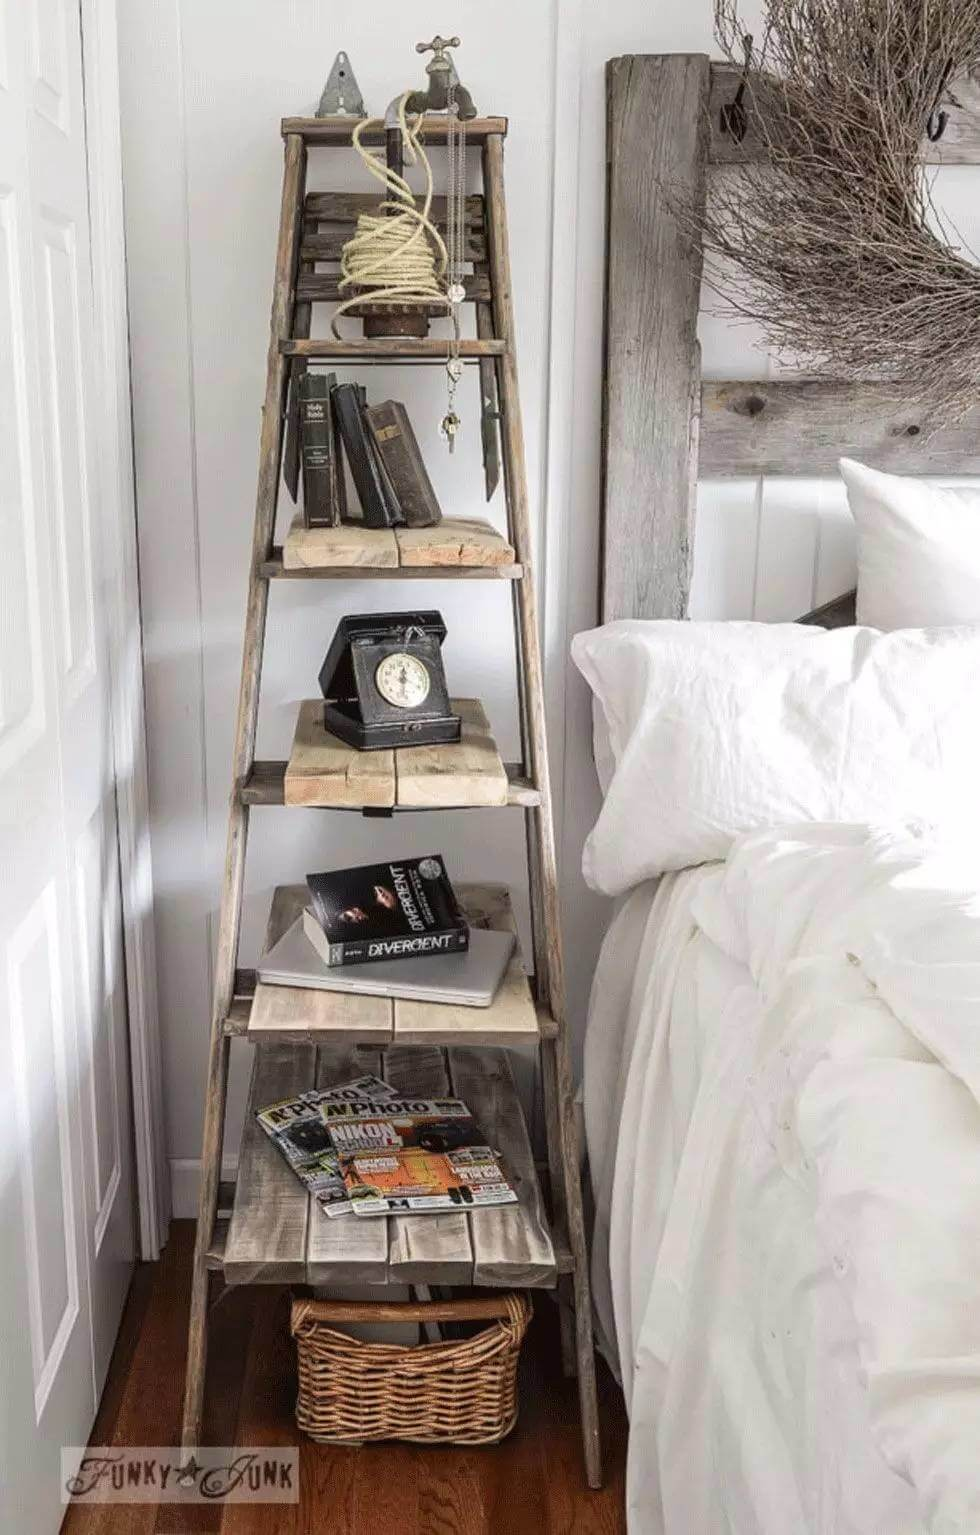 Merveilleux 17. Upcycled Orchard Ladder Turned Nightstand